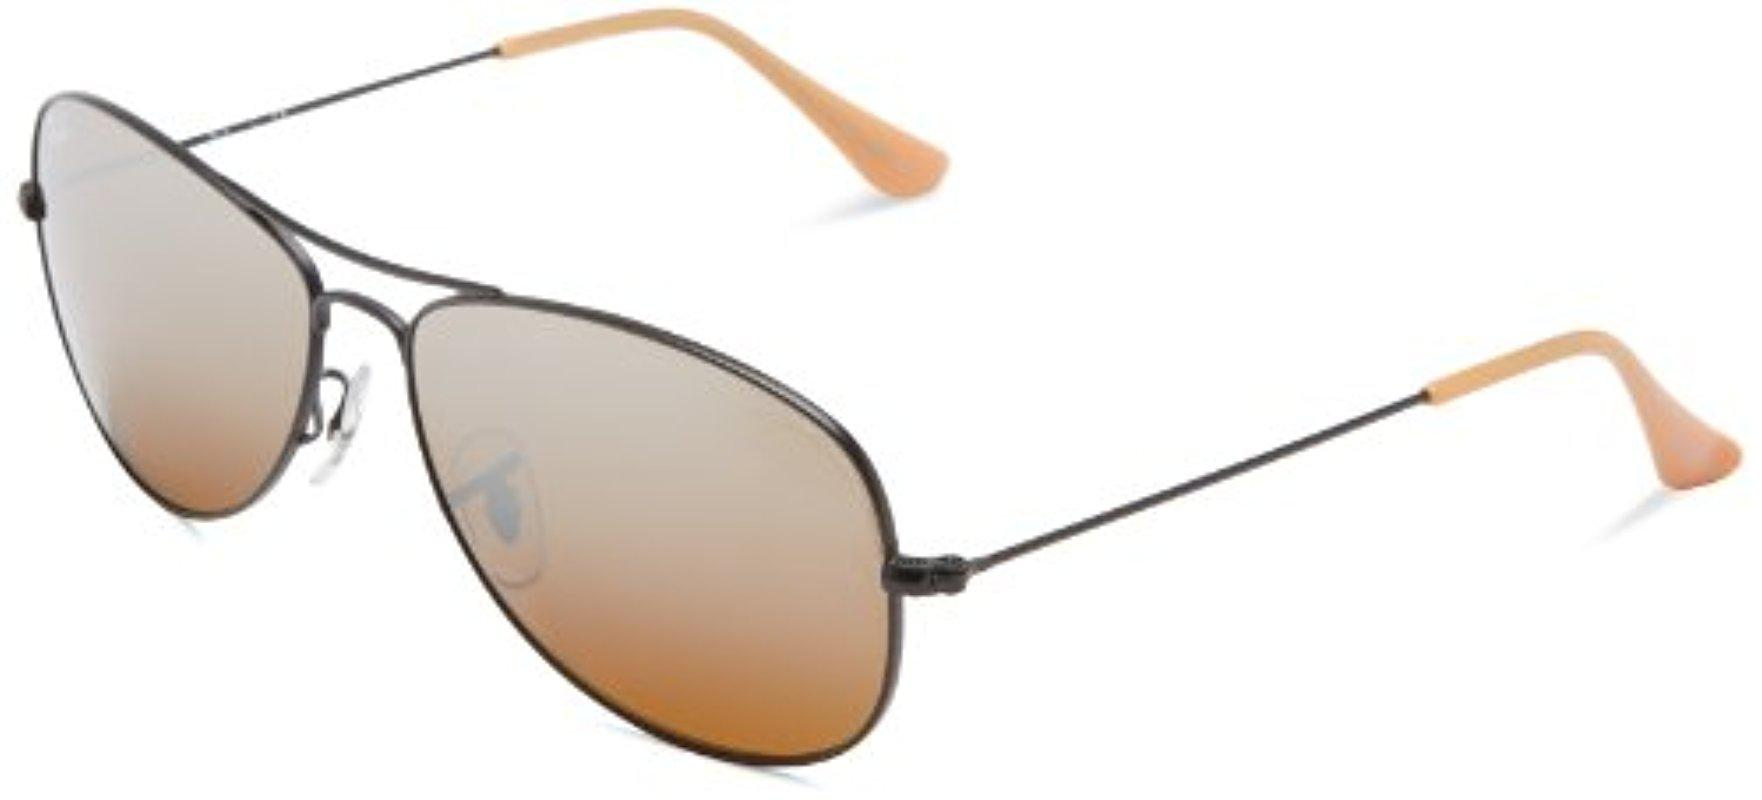 5114c48b92bcd Rayban 3362 Polarized « One More Soul